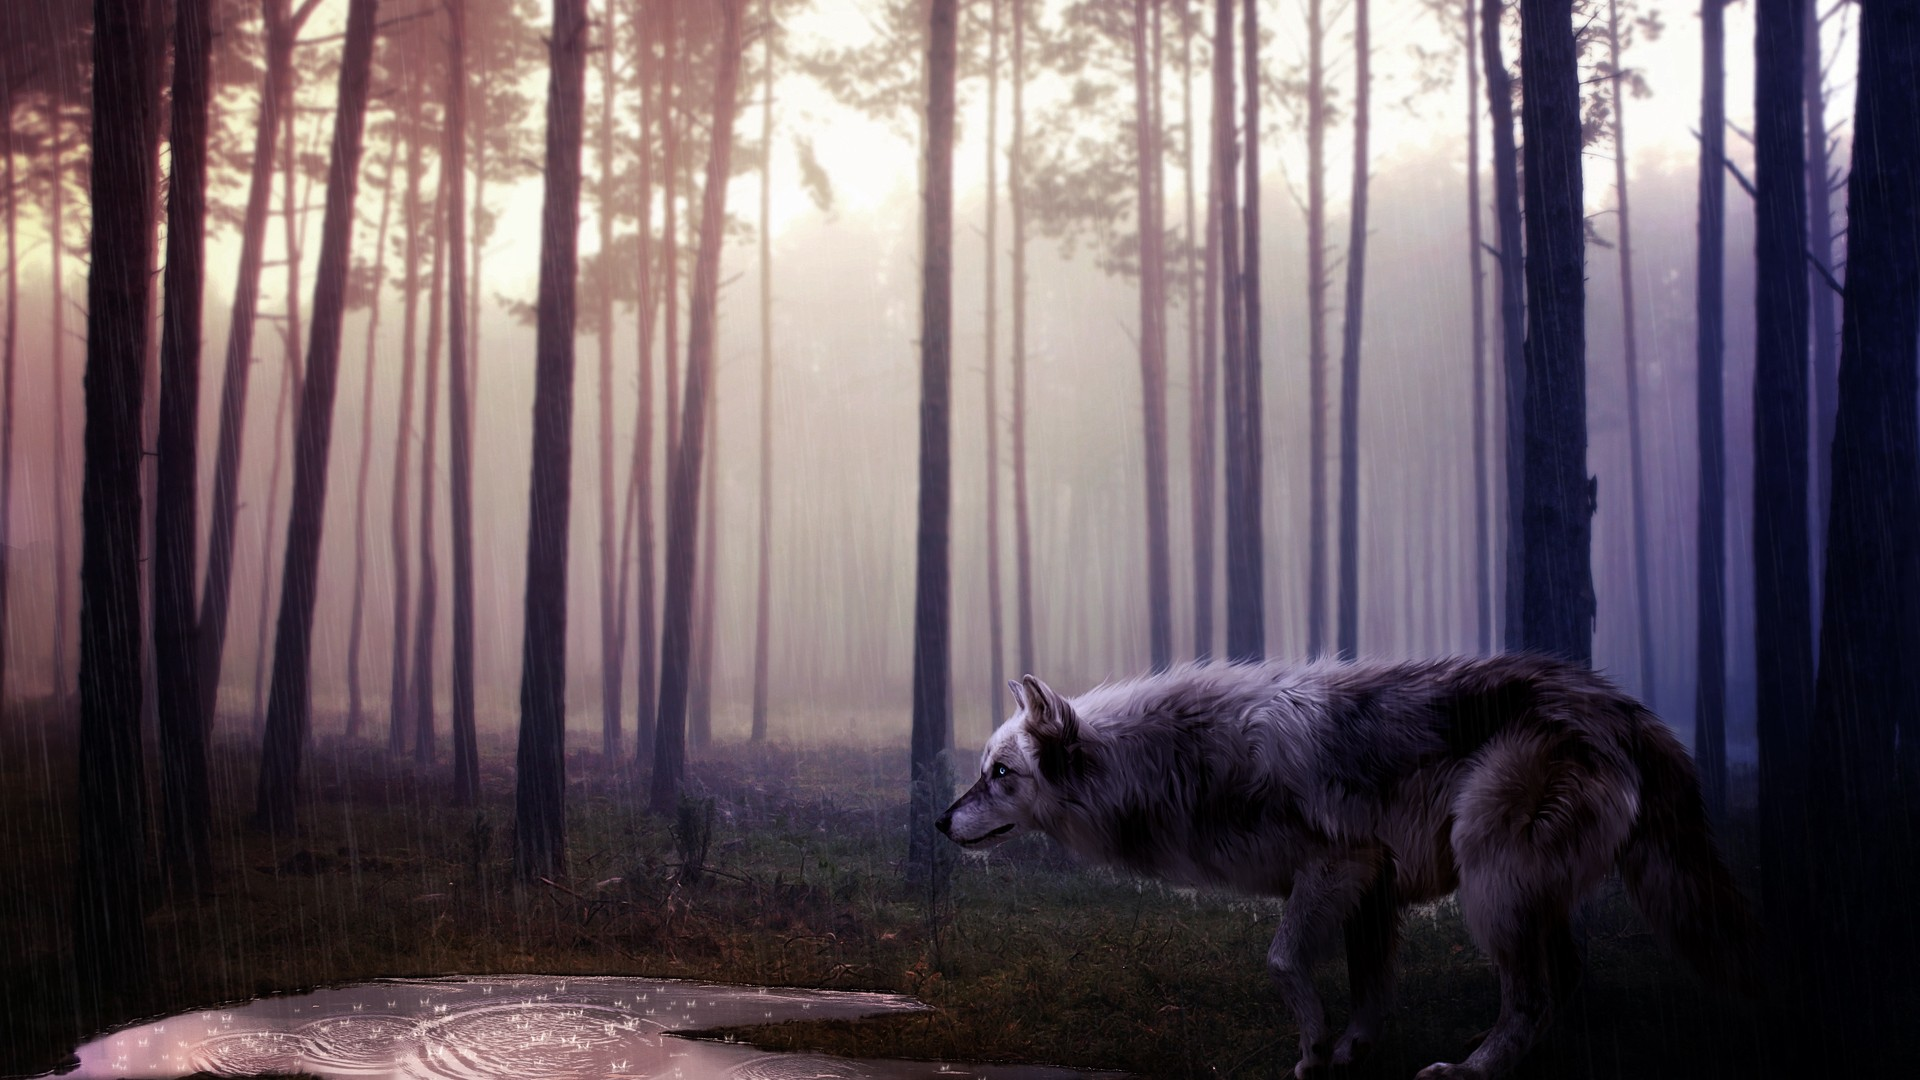 Wild Animal Wolf Wallpapers Hd 51074 Wallpaper: Wild Wolf, HD Animals, 4k Wallpapers, Images, Backgrounds